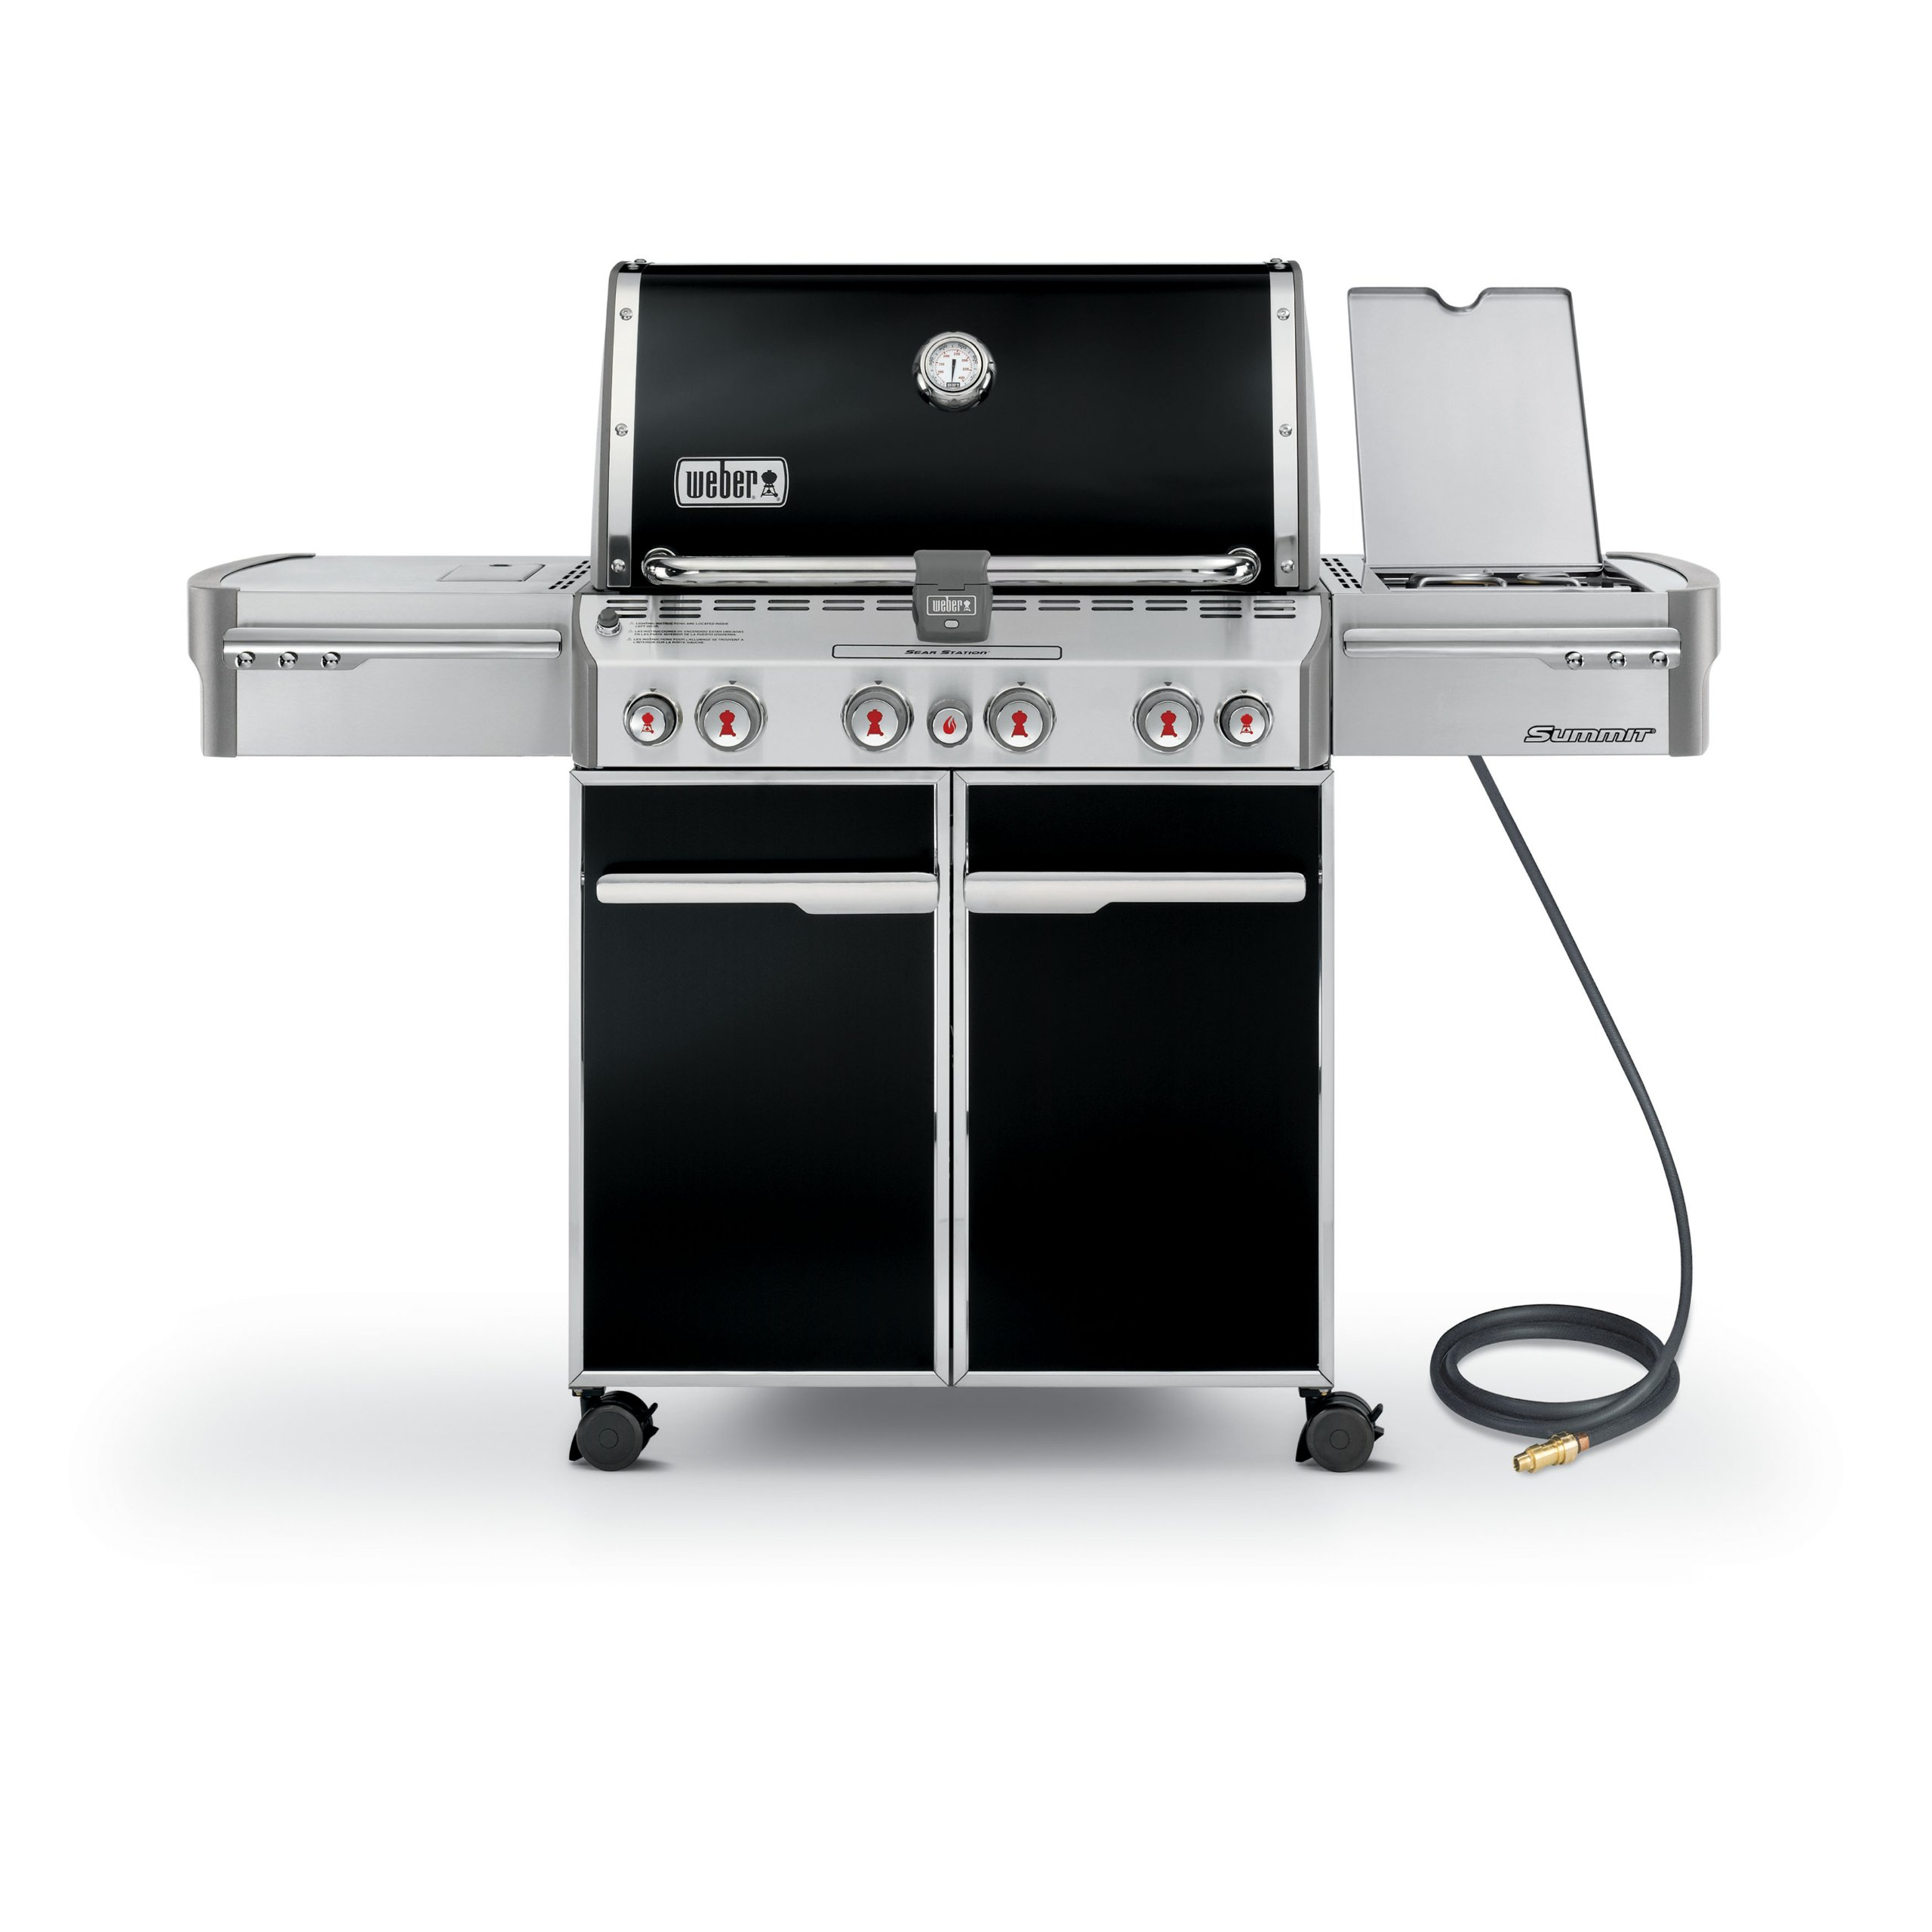 Weber Summit 7271001 E-470 580-Square-Inch 48,800-BTU Natural-Gas Grill, Black by Weber